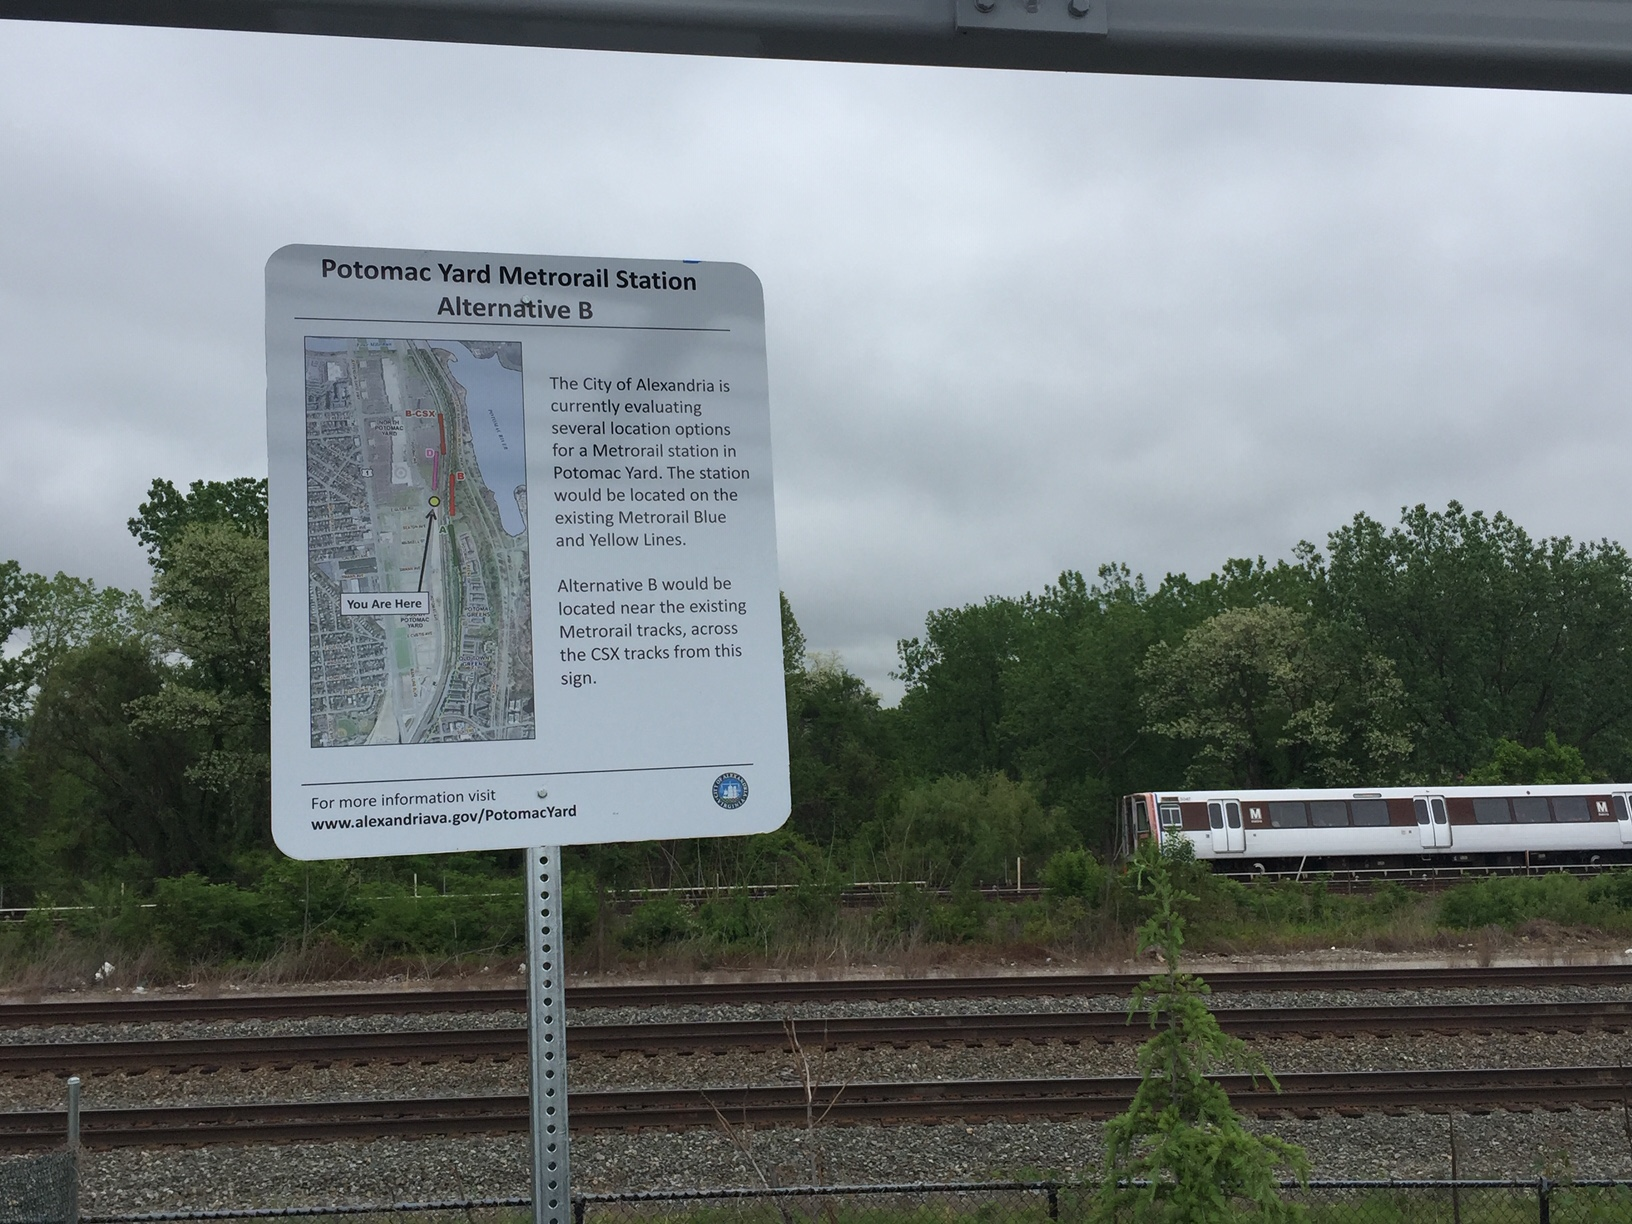 The public is invited to the Potomac Yard Metrorail Implementation Work Group (PYMIG) meetingscheduled for Monday, January 14, from 7 to 9 p.m., at the Charles Houston Recreation Center, Senior Room (901 Wythe Street).